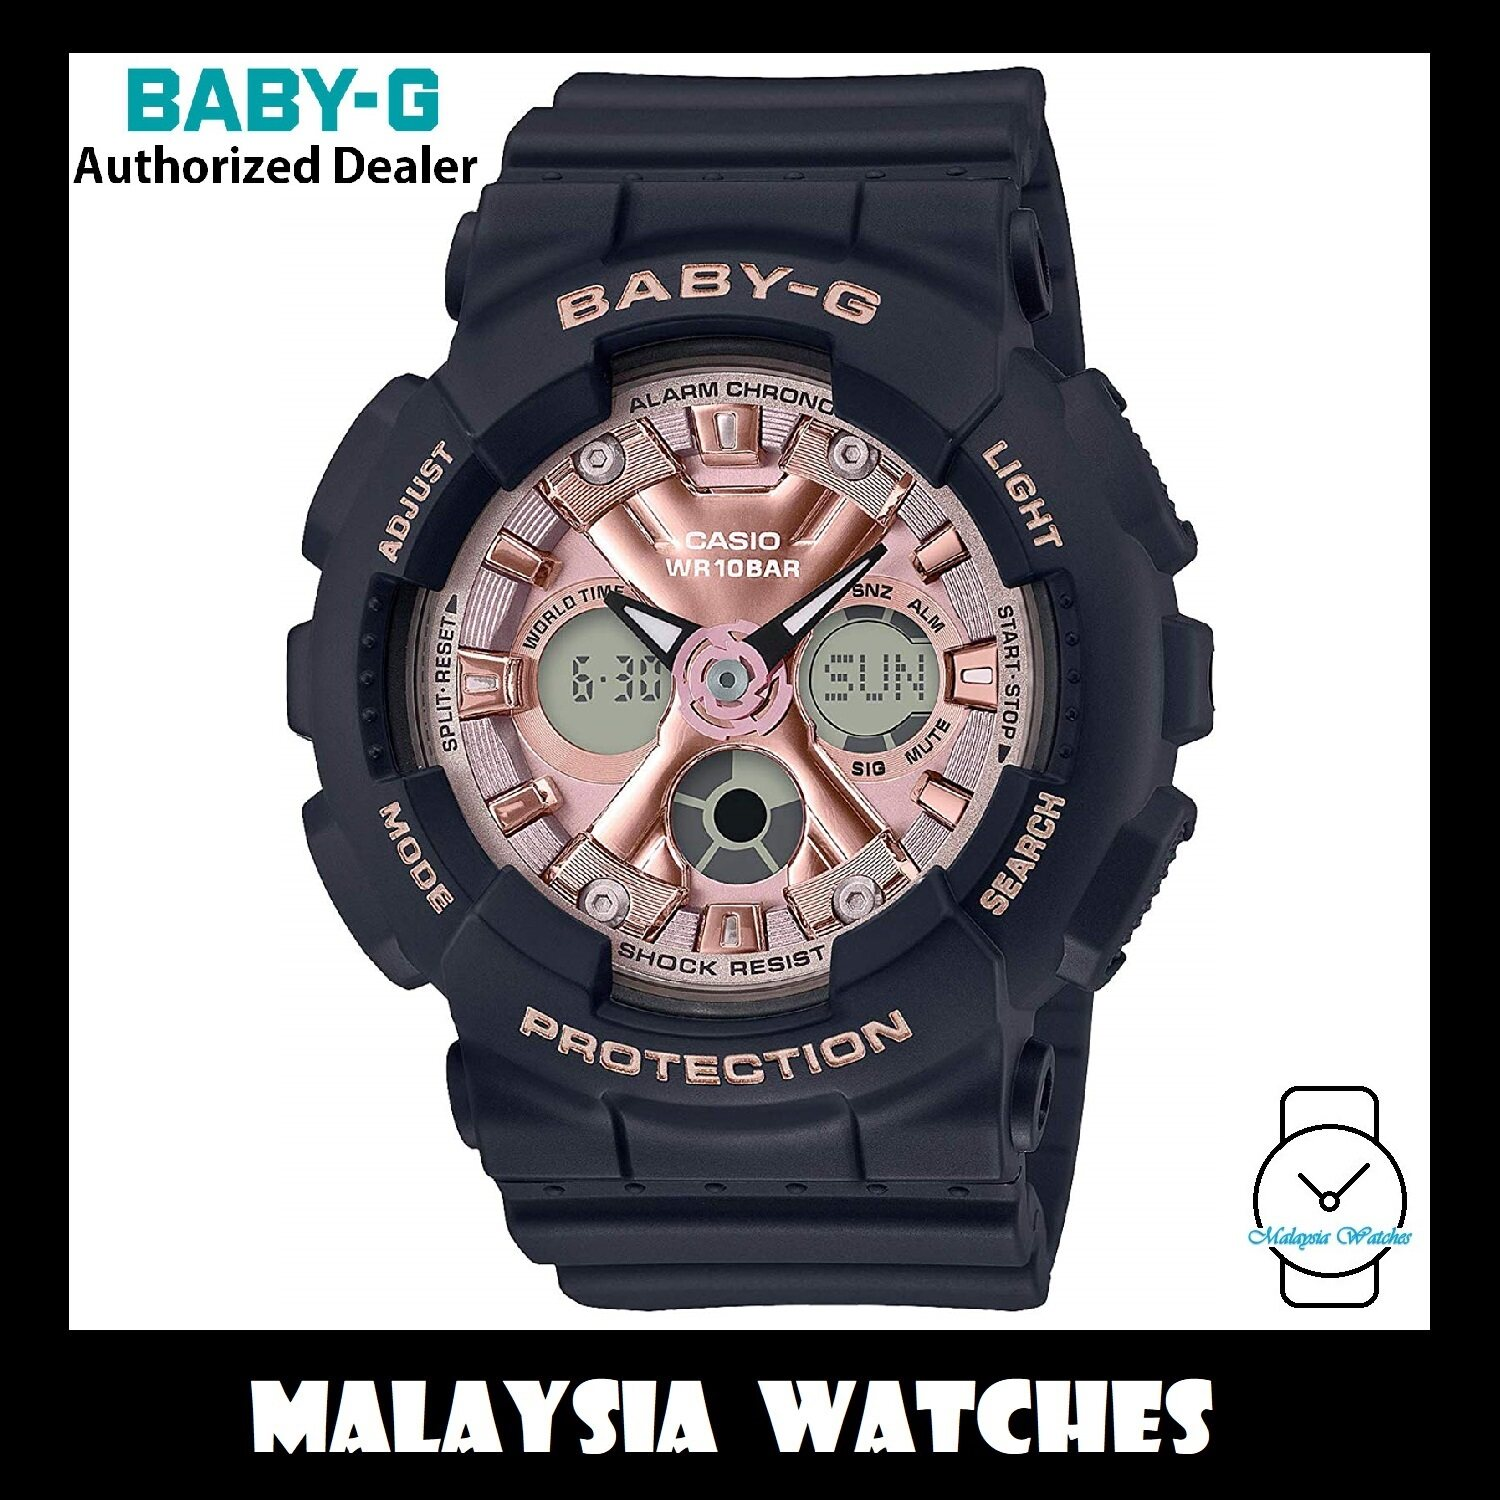 (OFFICIAL WARRANTY) Casio Baby-G BA-130-1A4 Standard Analog-Digital Black & Rose Gold Resin Watch BA130-1A4 BA130-1A4DR BA-130-1A4DR Malaysia